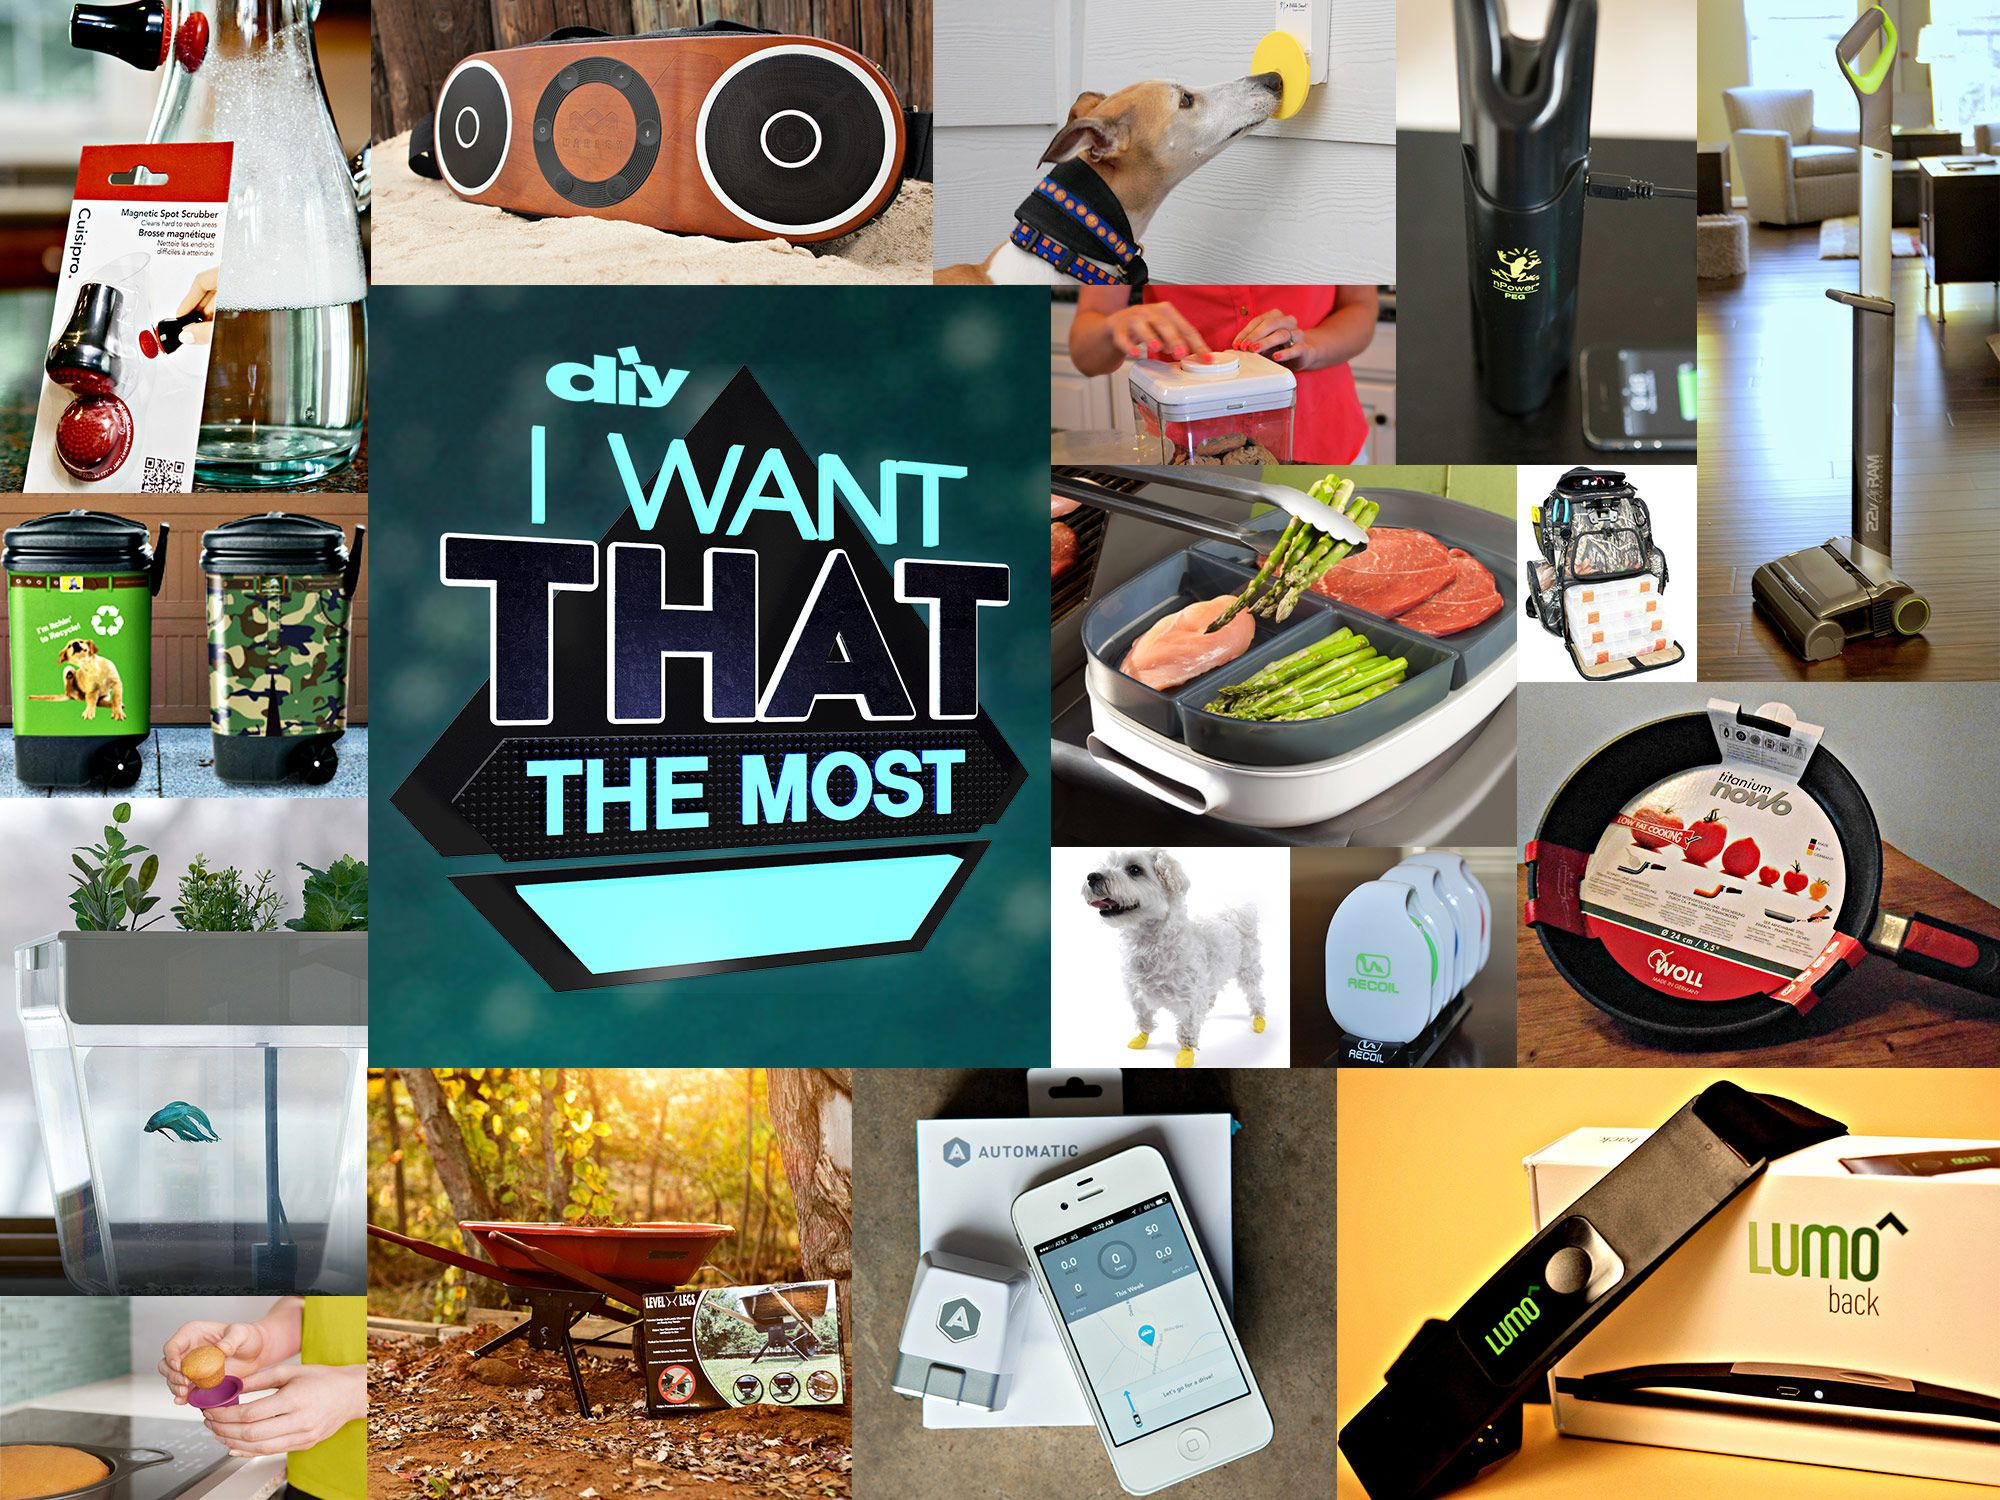 I want that products - 30 Top Products From I Want That Season 4